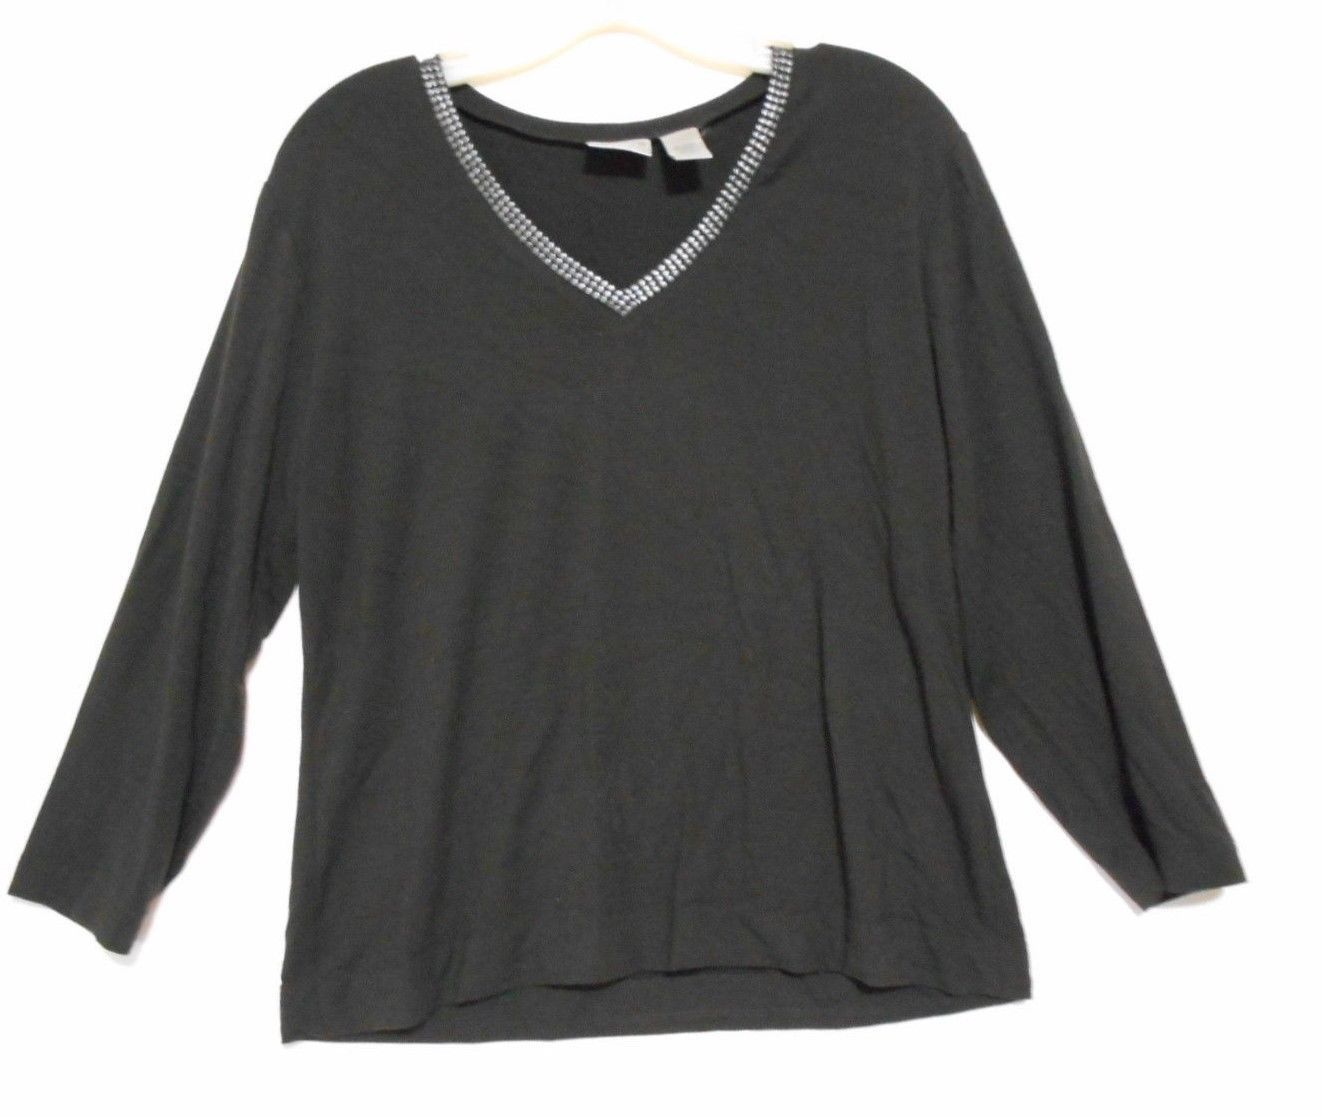 96e19b5f4ec473 Chico's Brown Metallic Trim Rayon Knit Top size 1 Long Sleeve Vee Neck -  $11.72